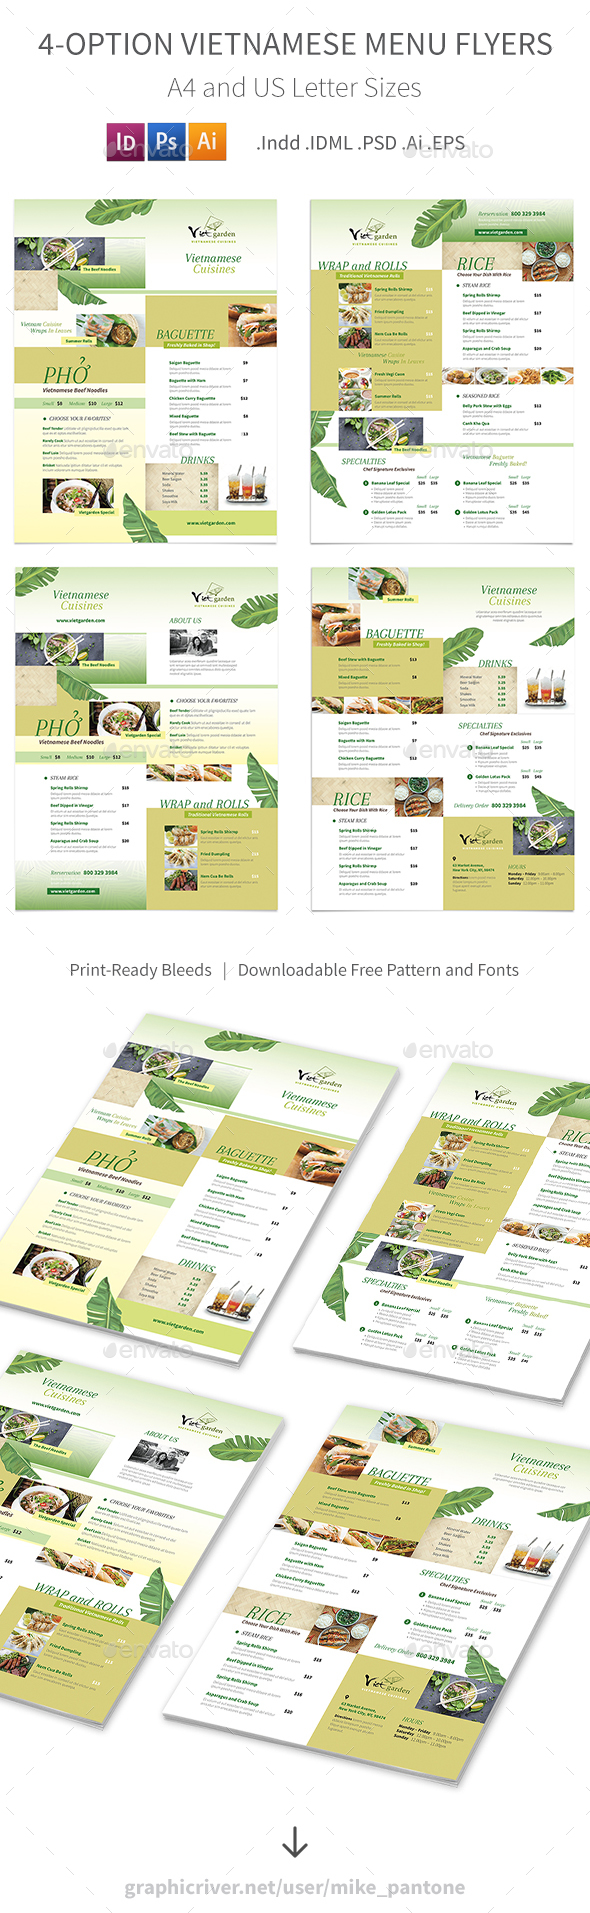 Vietnamese Pho Menu Flyers 3 – 4 Options - Food Menus Print Templates